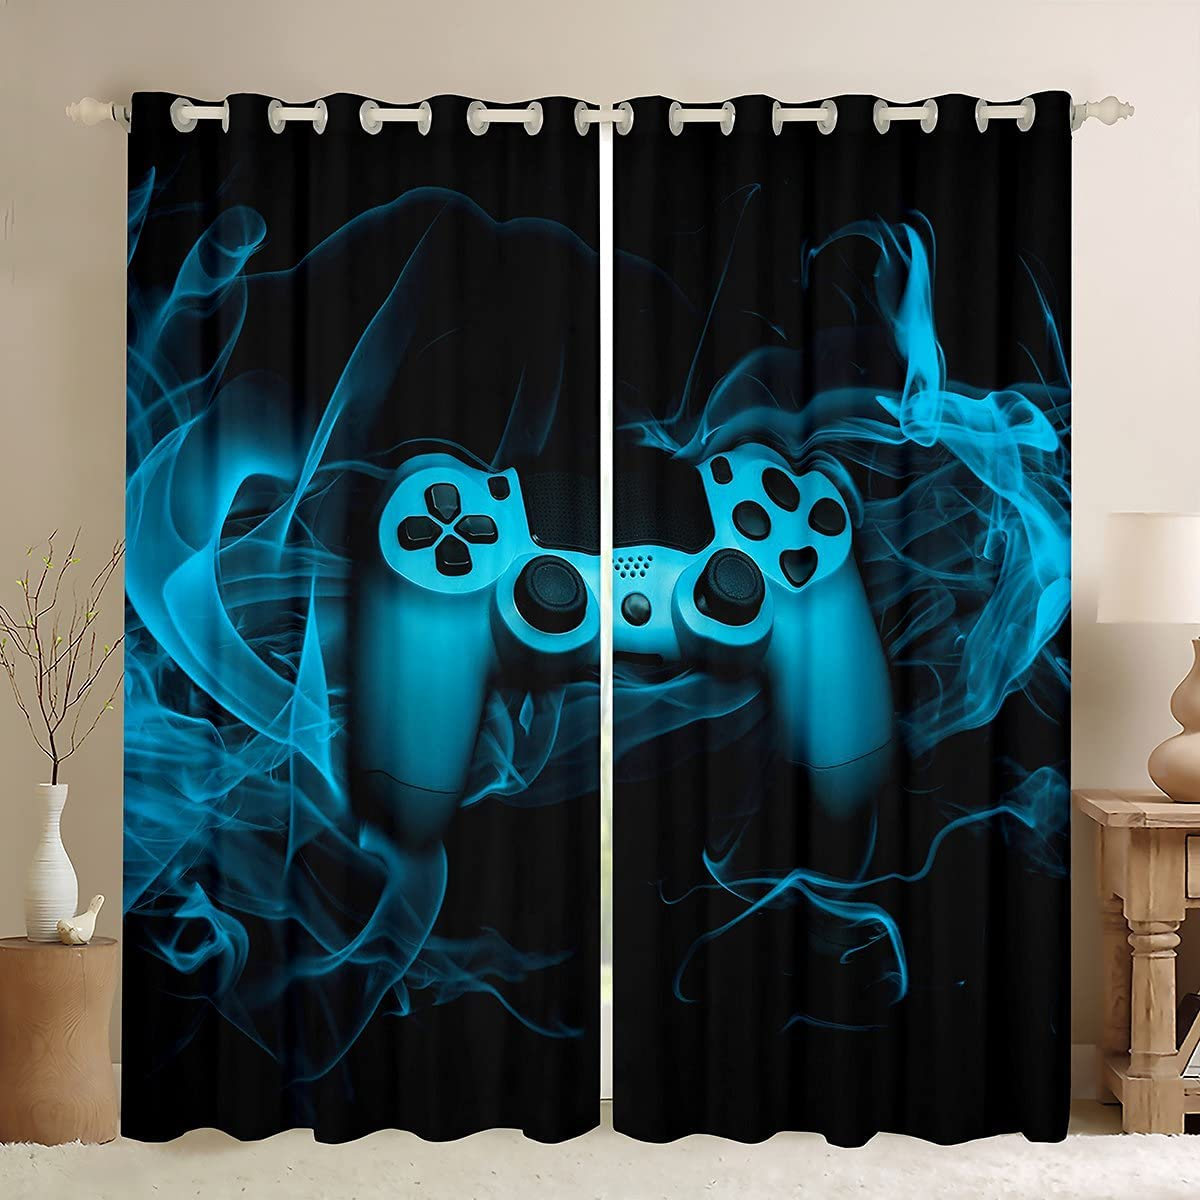 Boy Video Games Oakland Max 42% OFF Mall Window Curtain Kid Teen Smo Gaming Gamepad with